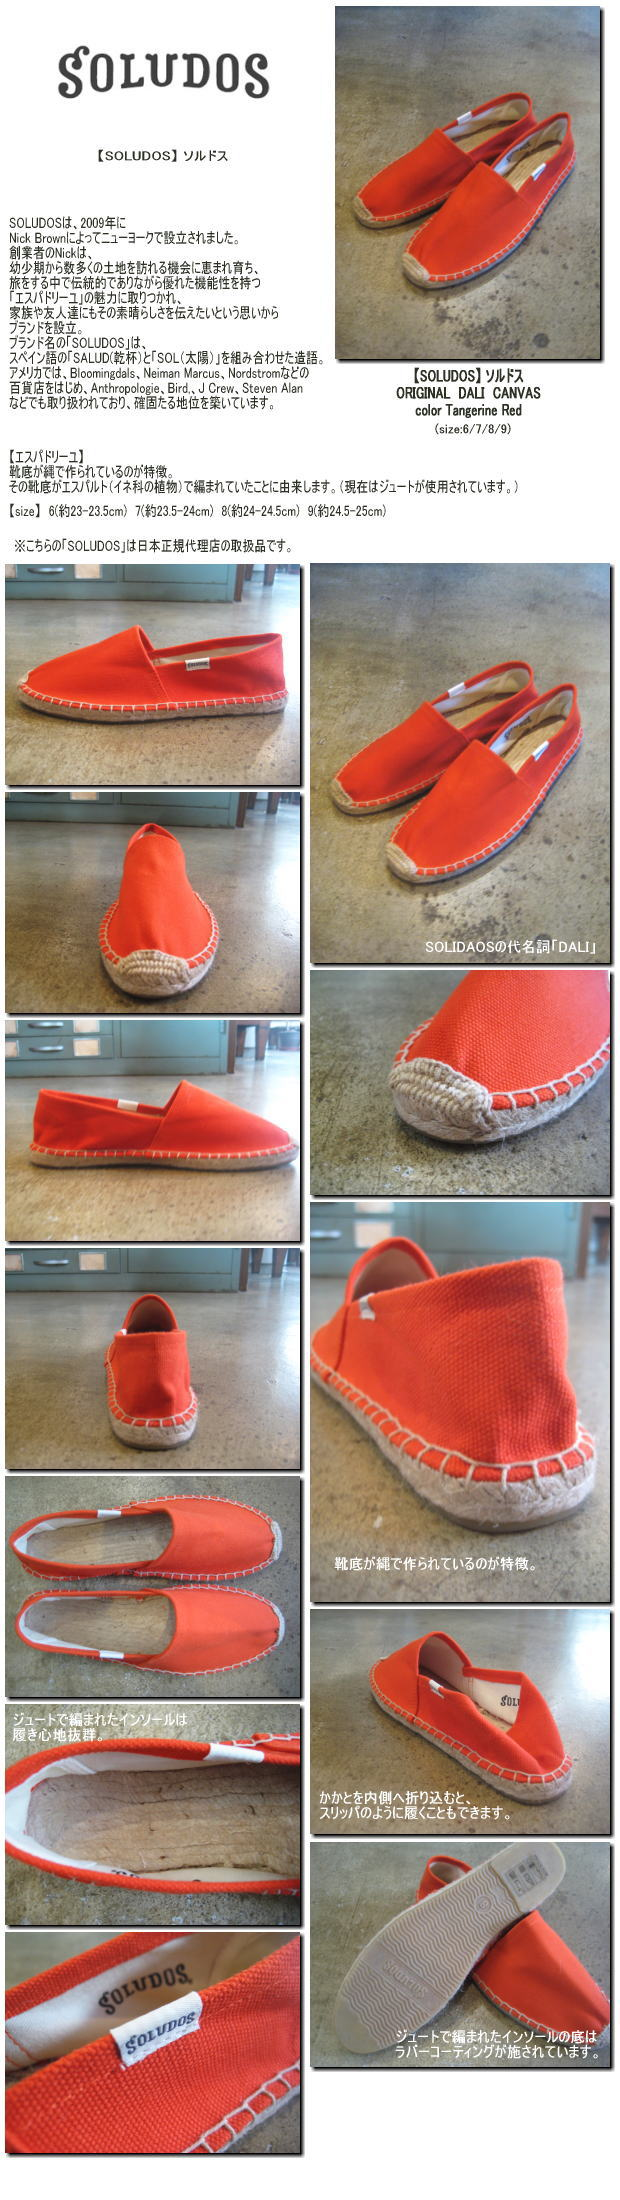 【SOLUDOS】 ソルドス ORIGINAL DALI CANVAS color Tangerine Red